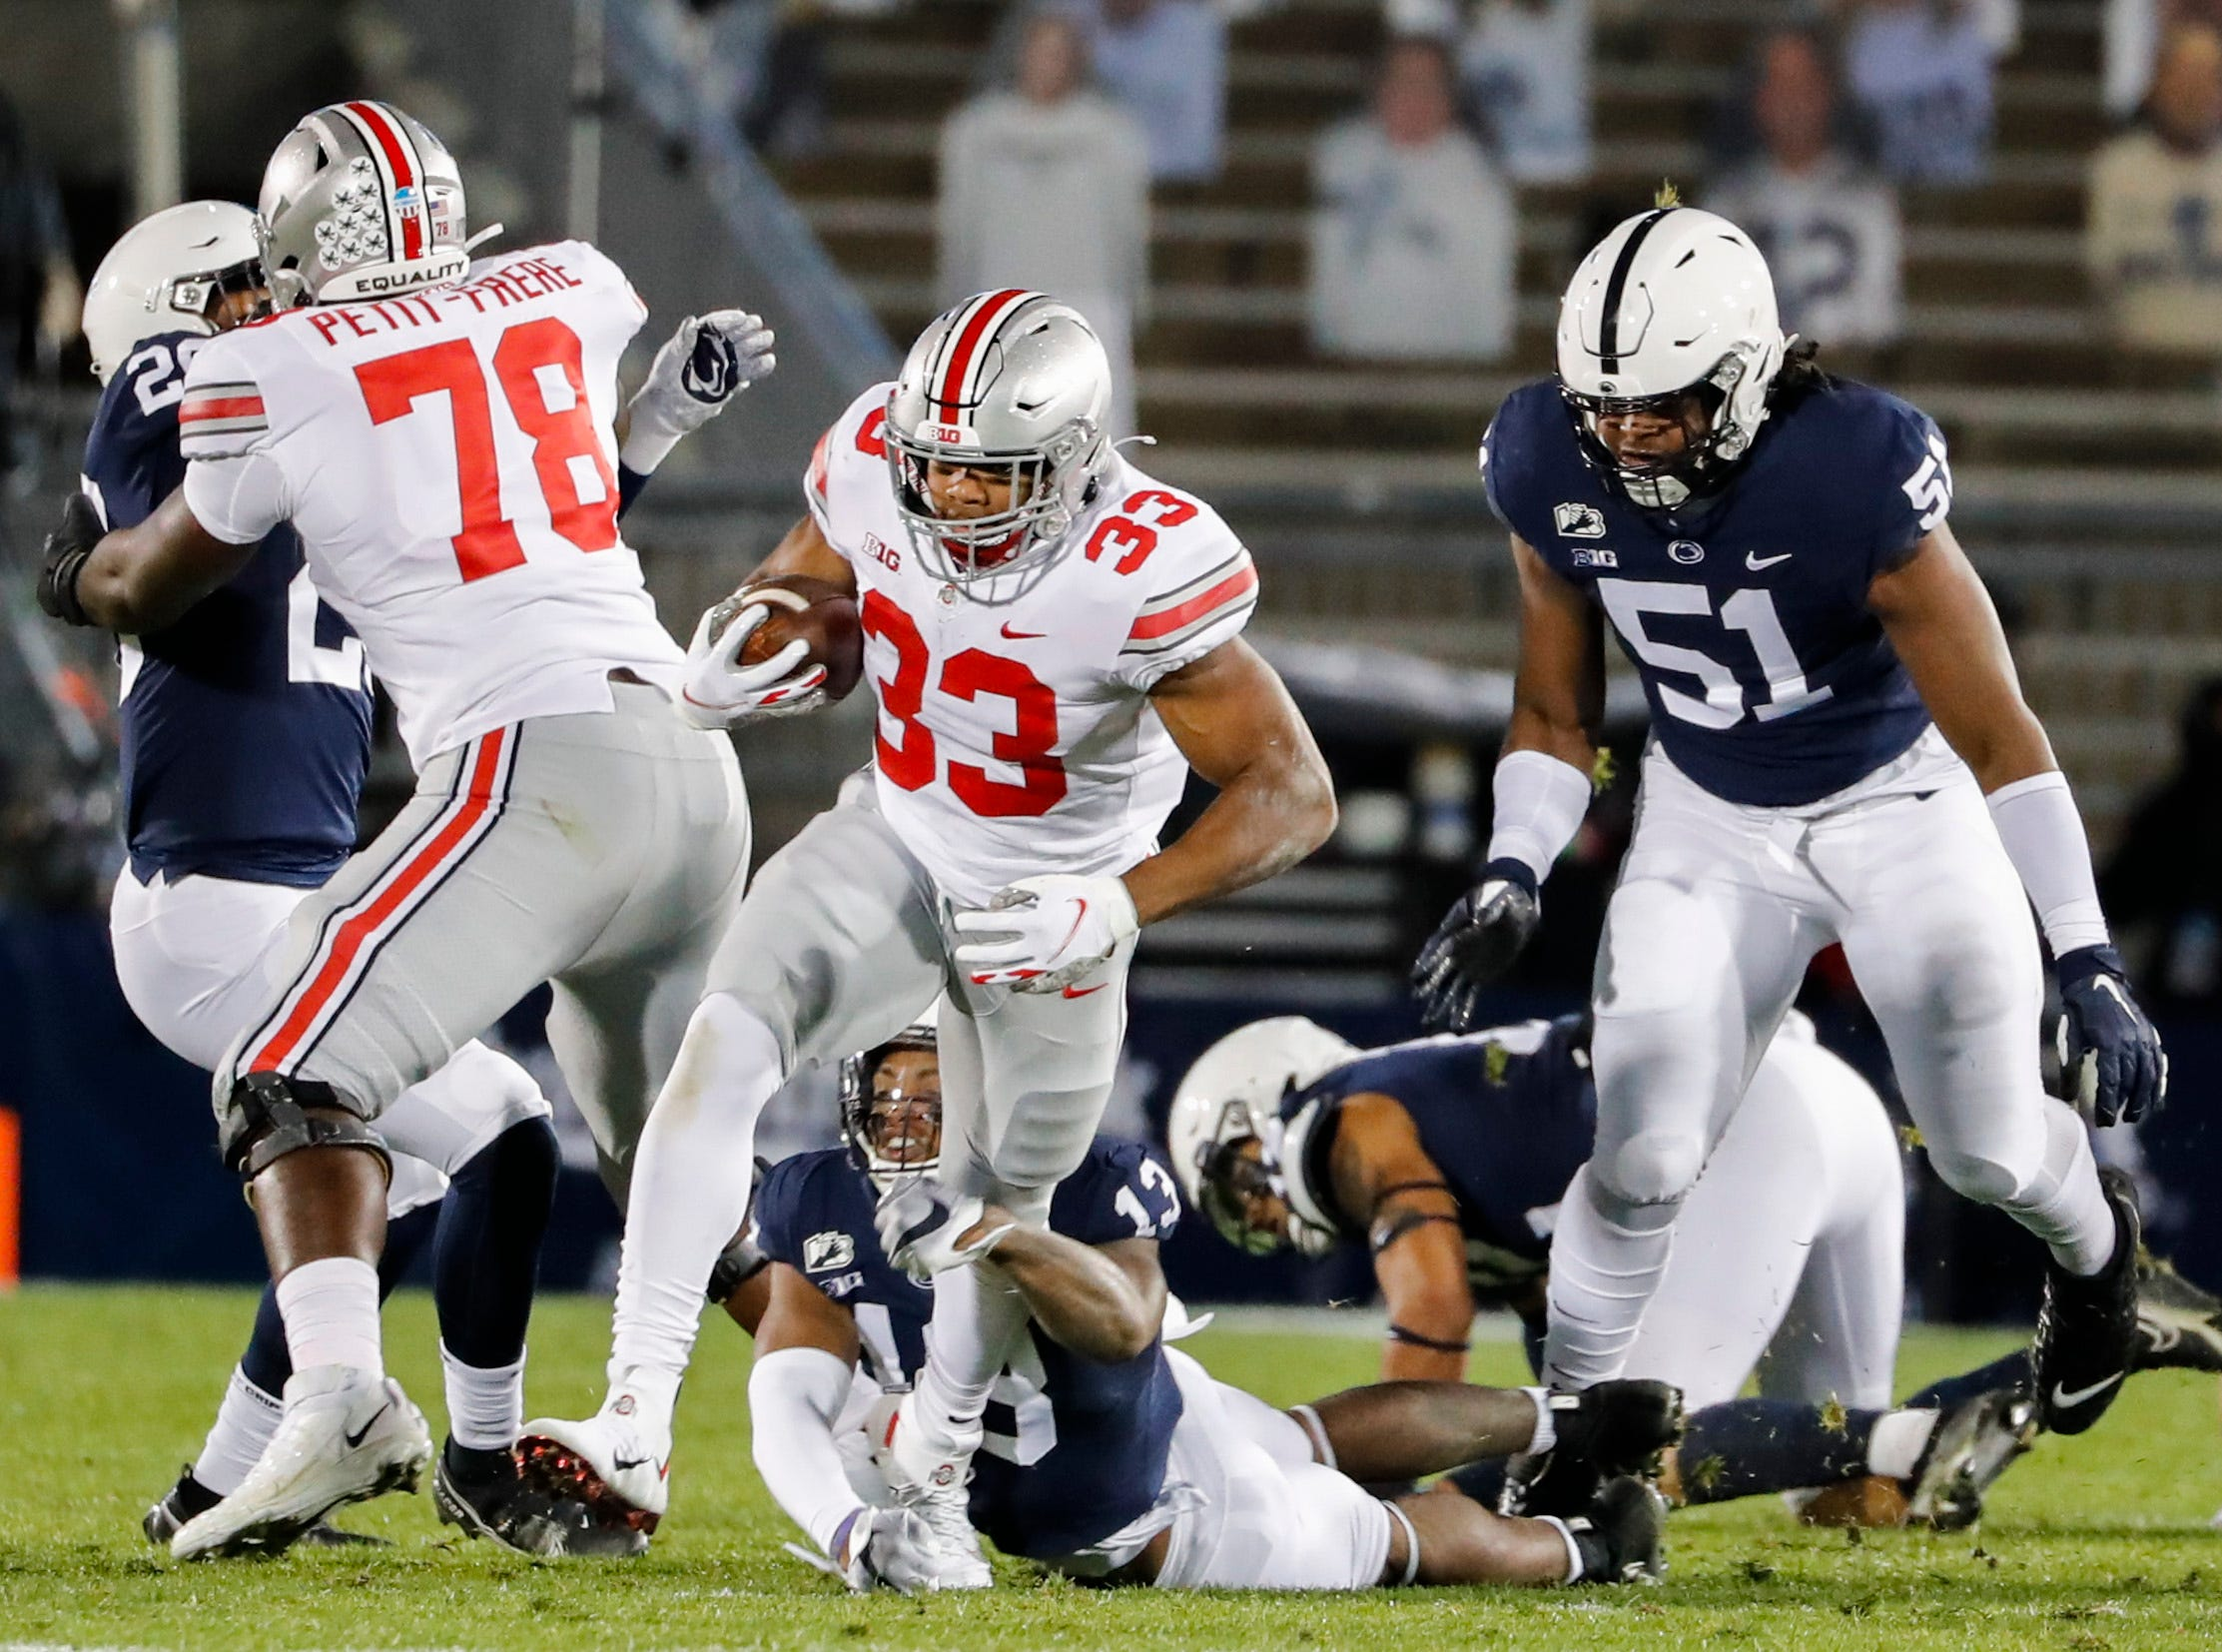 Ohio State largely cruises in Buckeyes' biggest win at Penn State since 2010